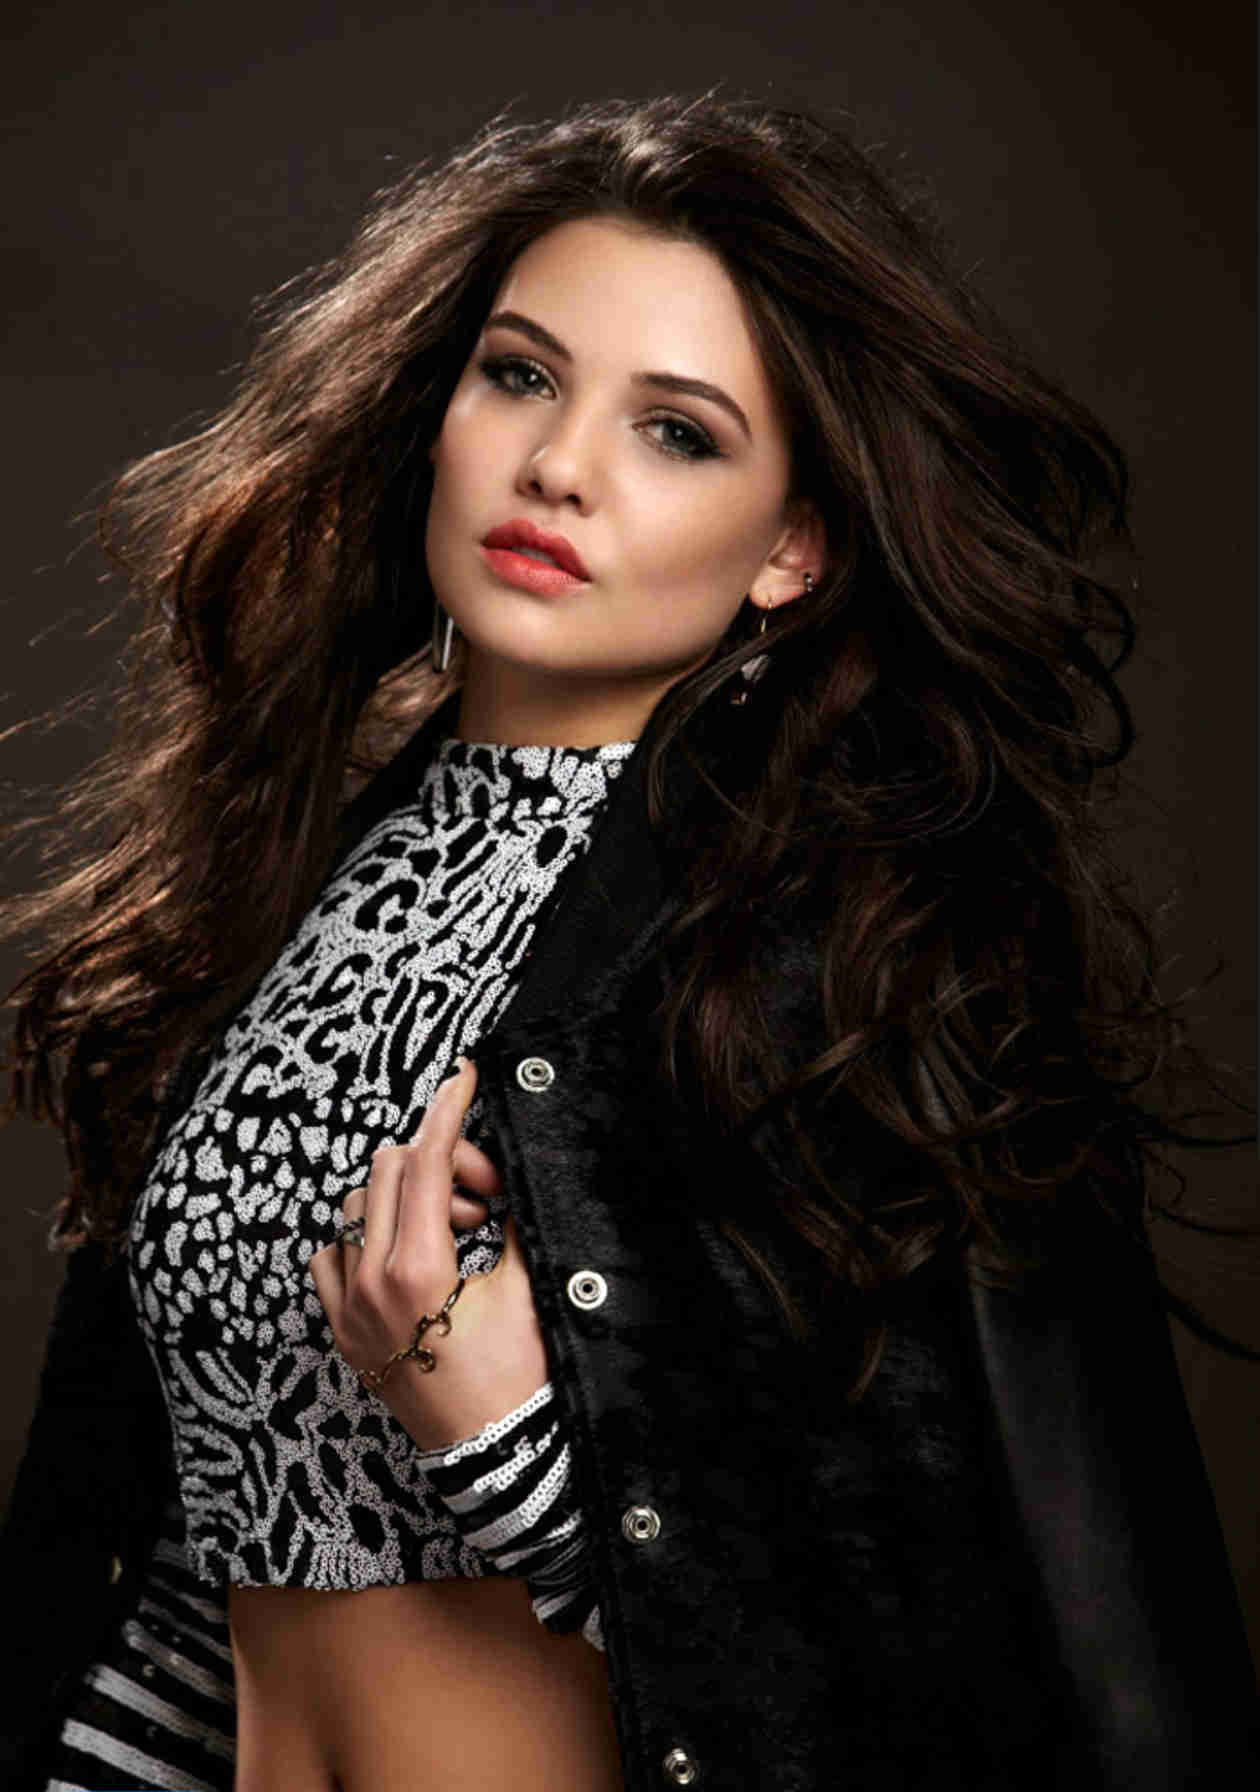 49 Hot Pictures Of Danielle Campbell Will Make You Crave